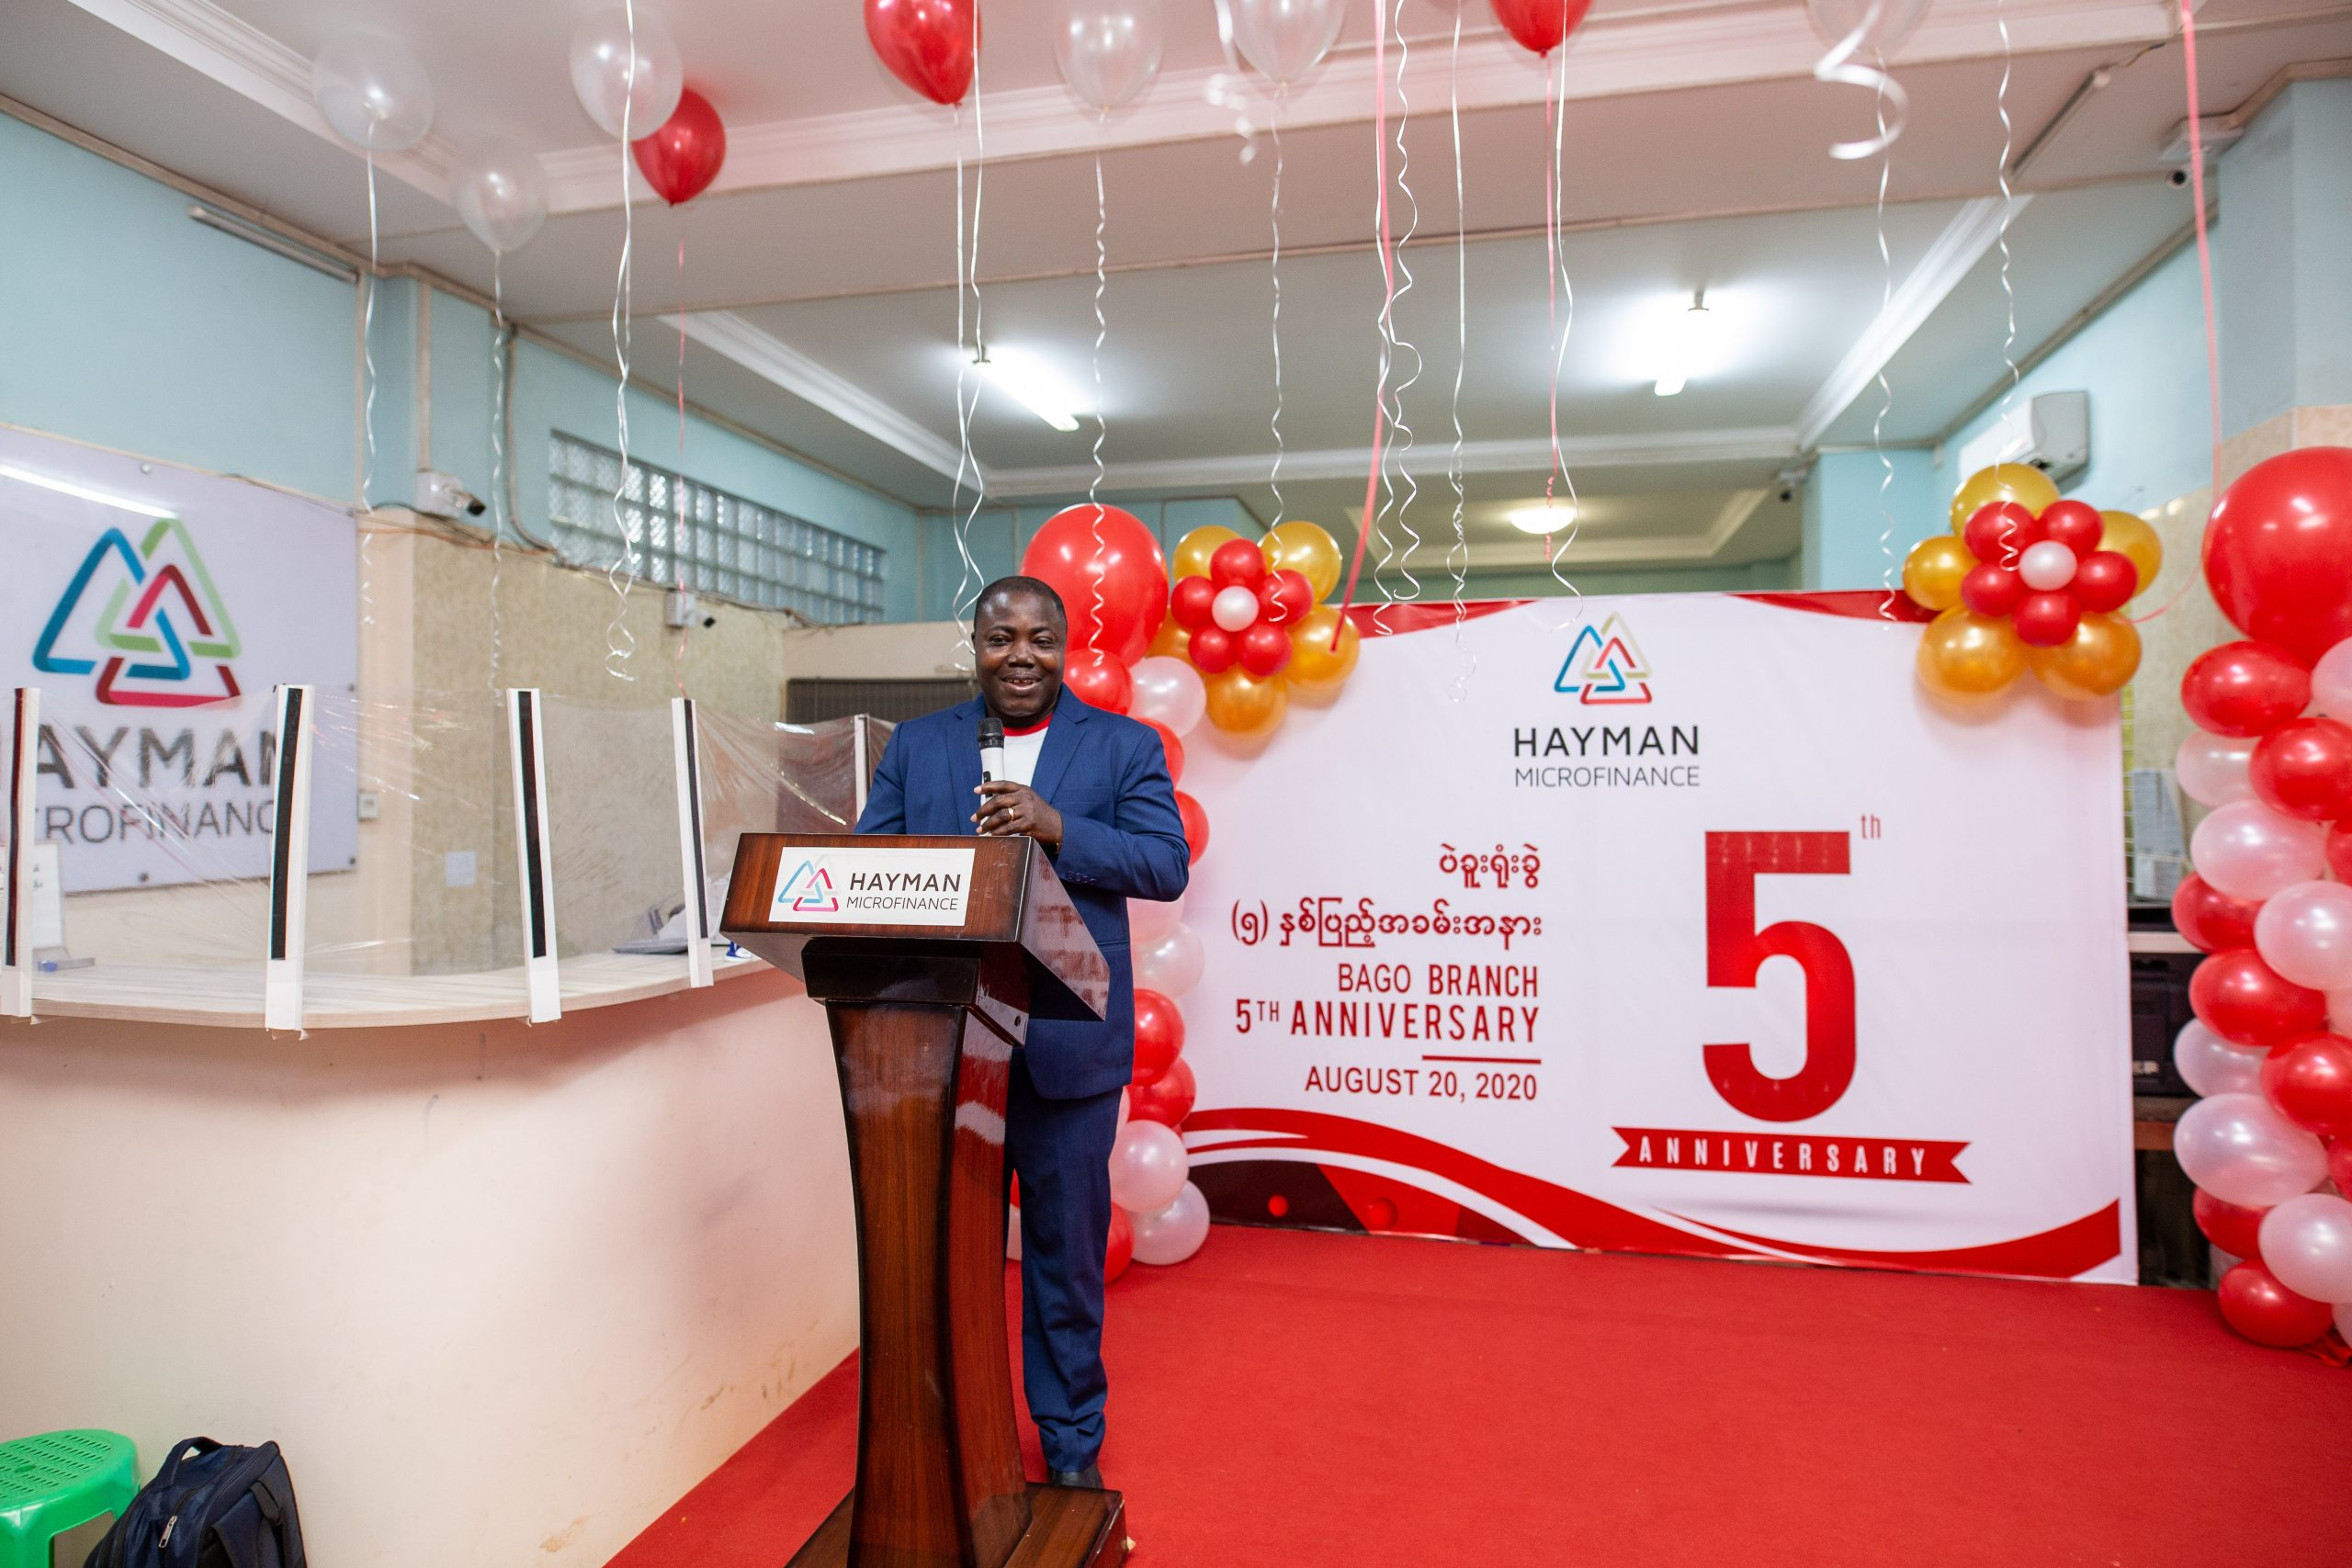 HAYAMN MICROFINANCE CELEBRATES 5TH ANNIVERSARY OF BAGO BRANCH